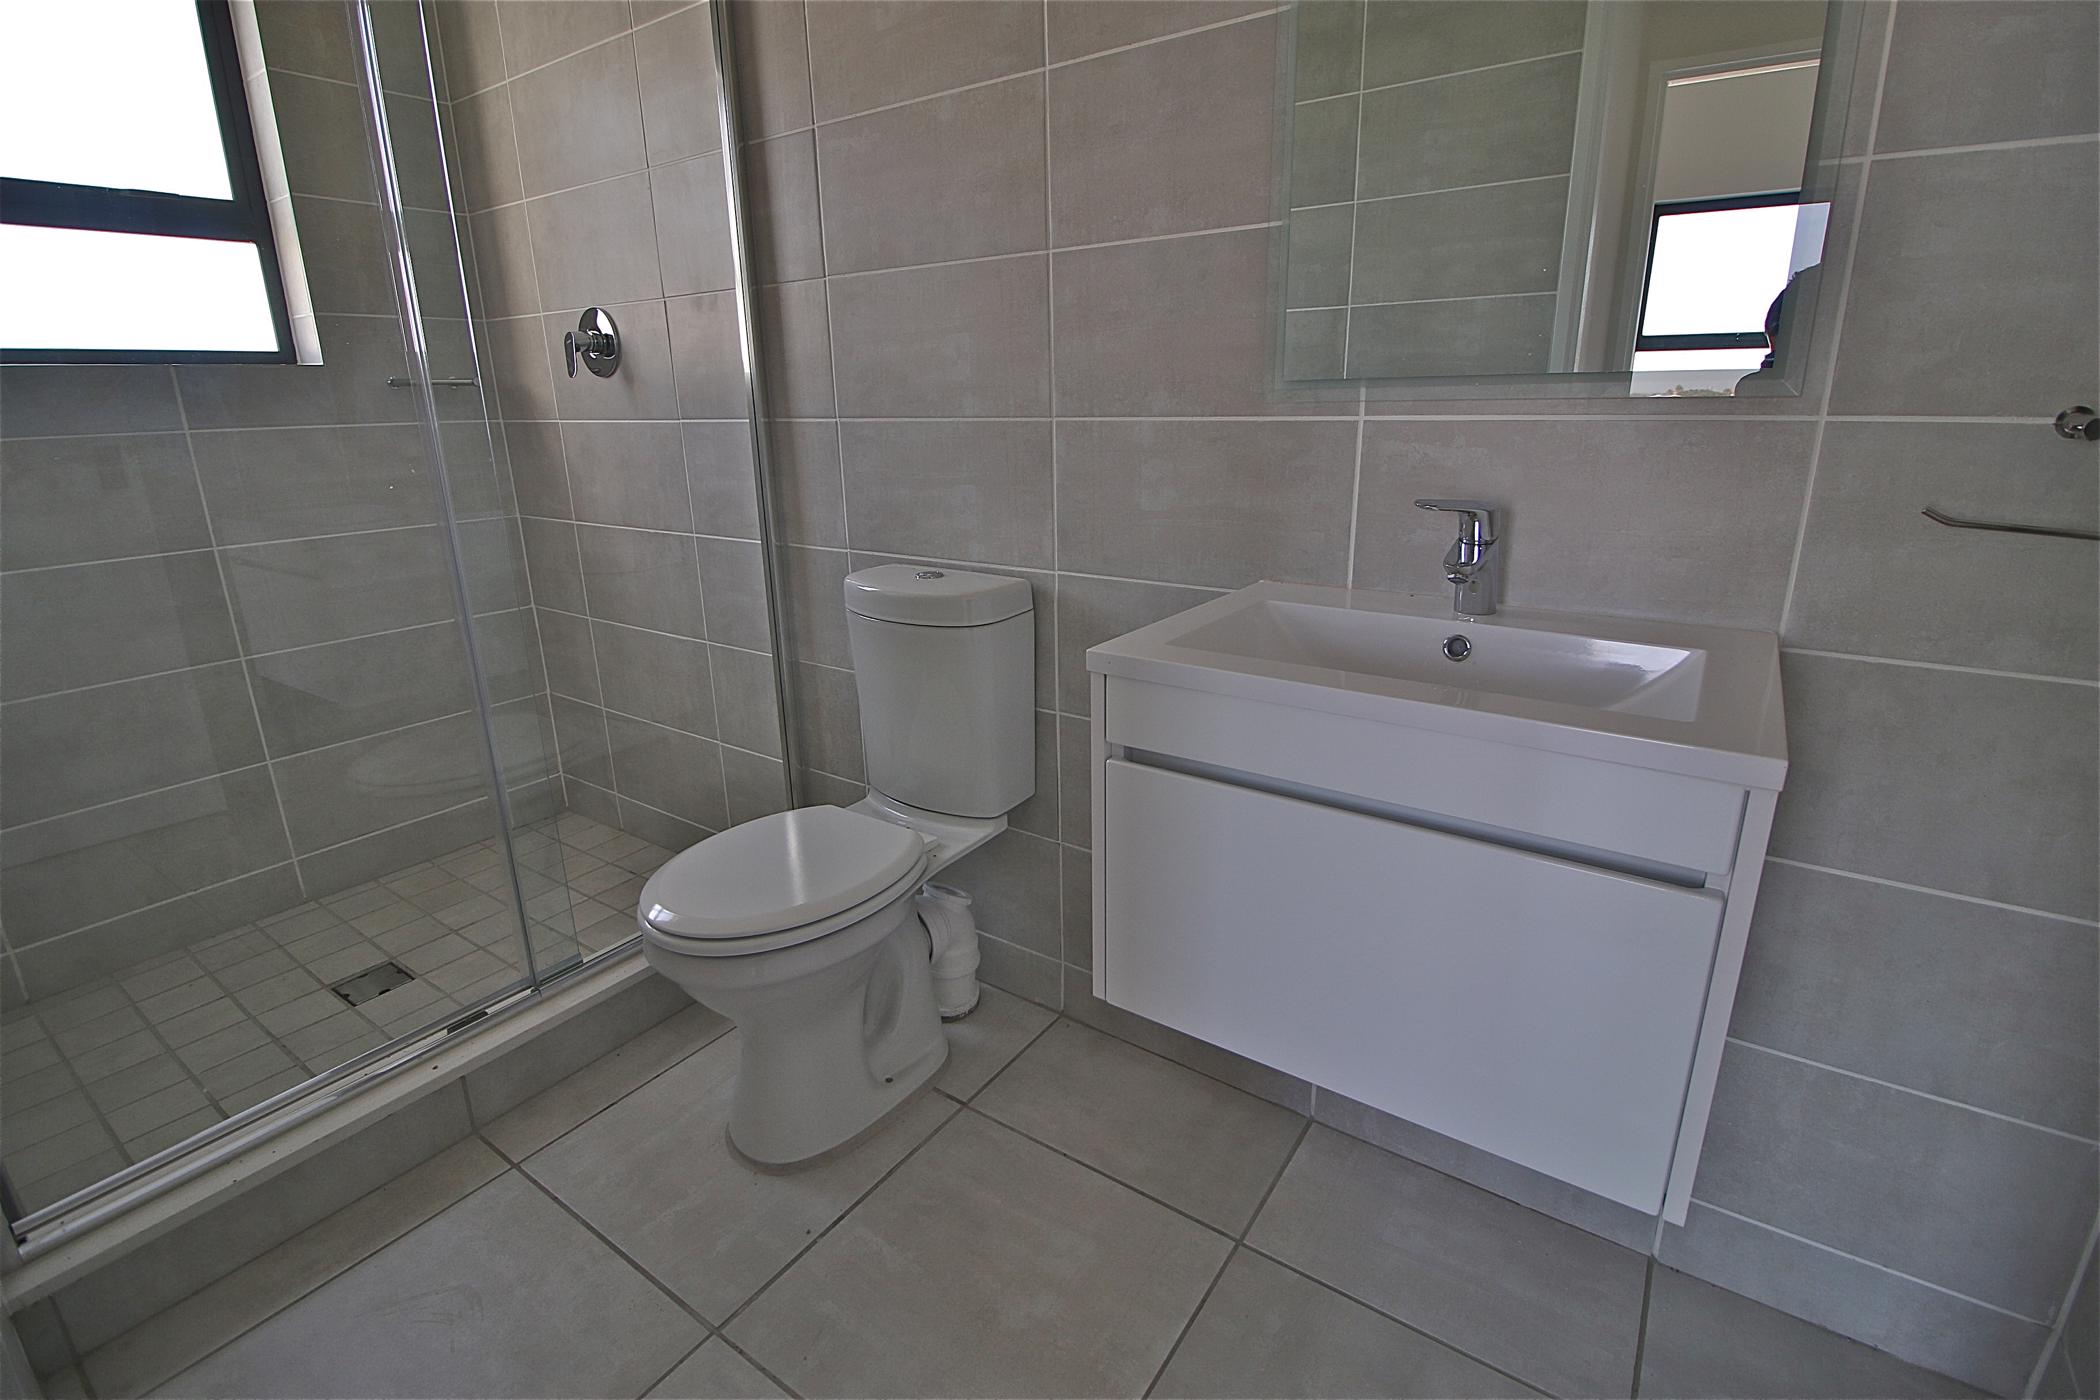 https://listing.pamgolding.co.za/images/properties/201902/1259633/H/1259633_H_3.jpg